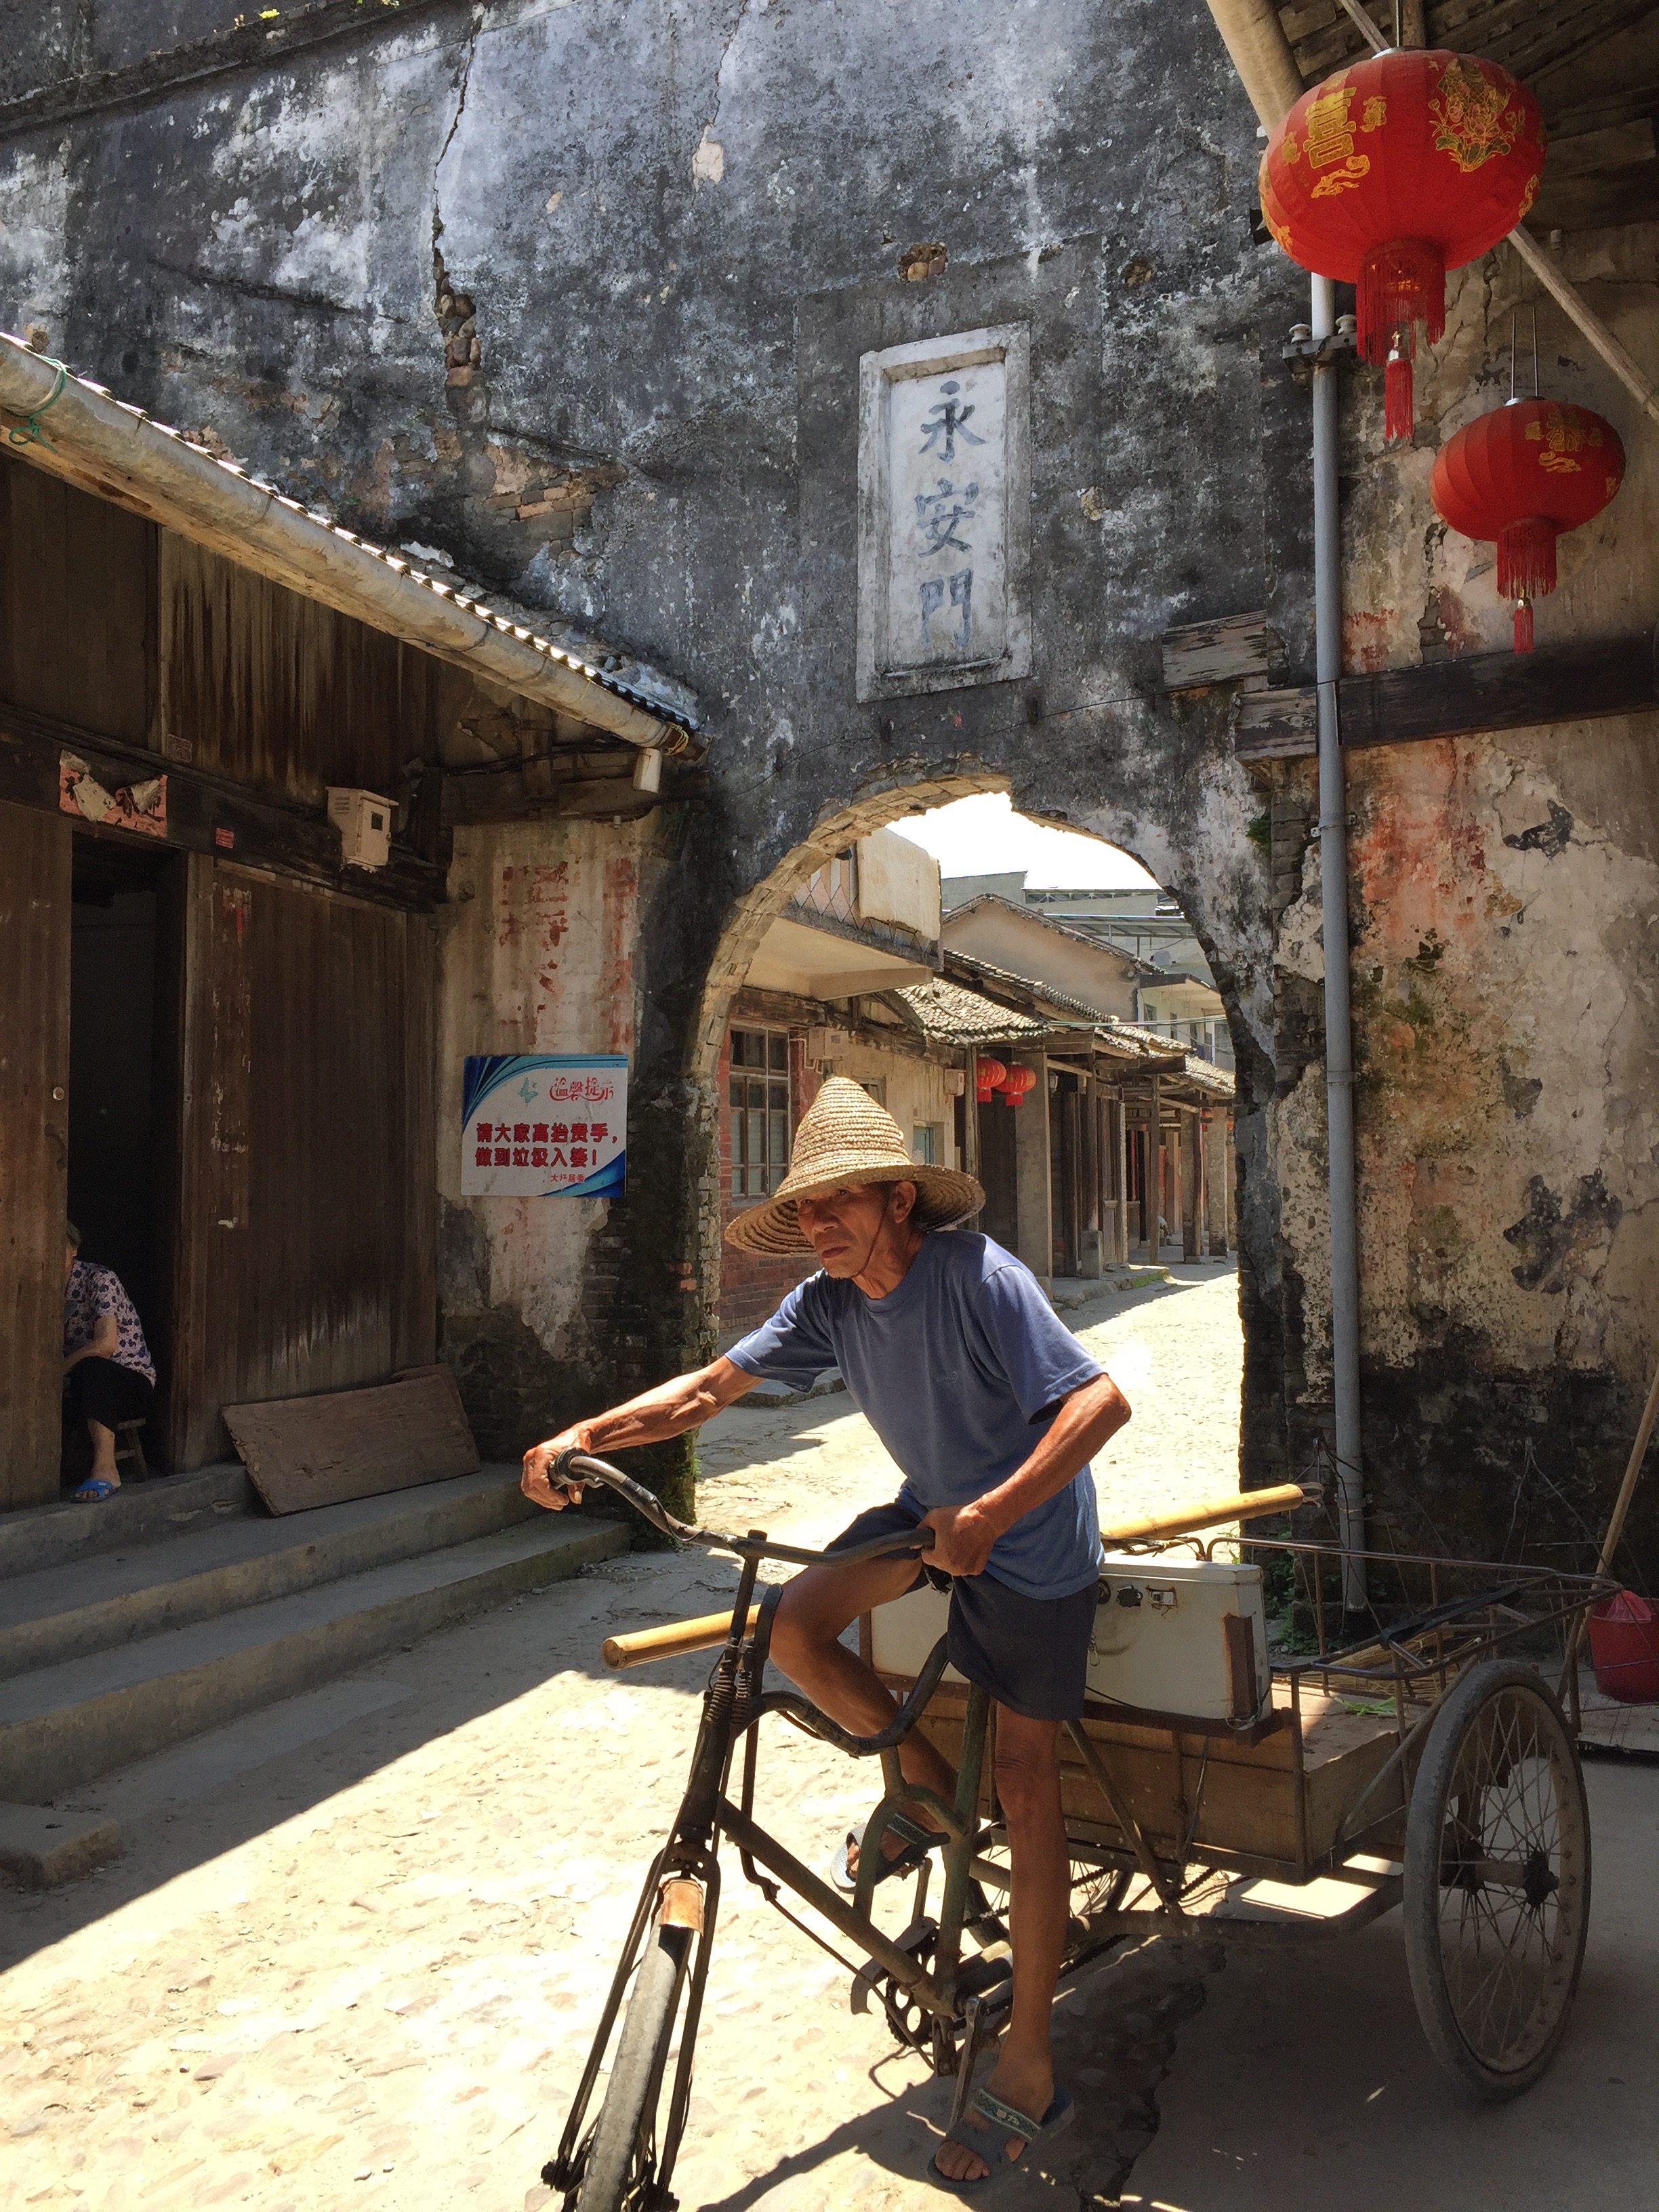 But it wasn't all waterfalls, yangshup is a small village (for China) and the surrounding countryside has even smaller and more ancient villages.